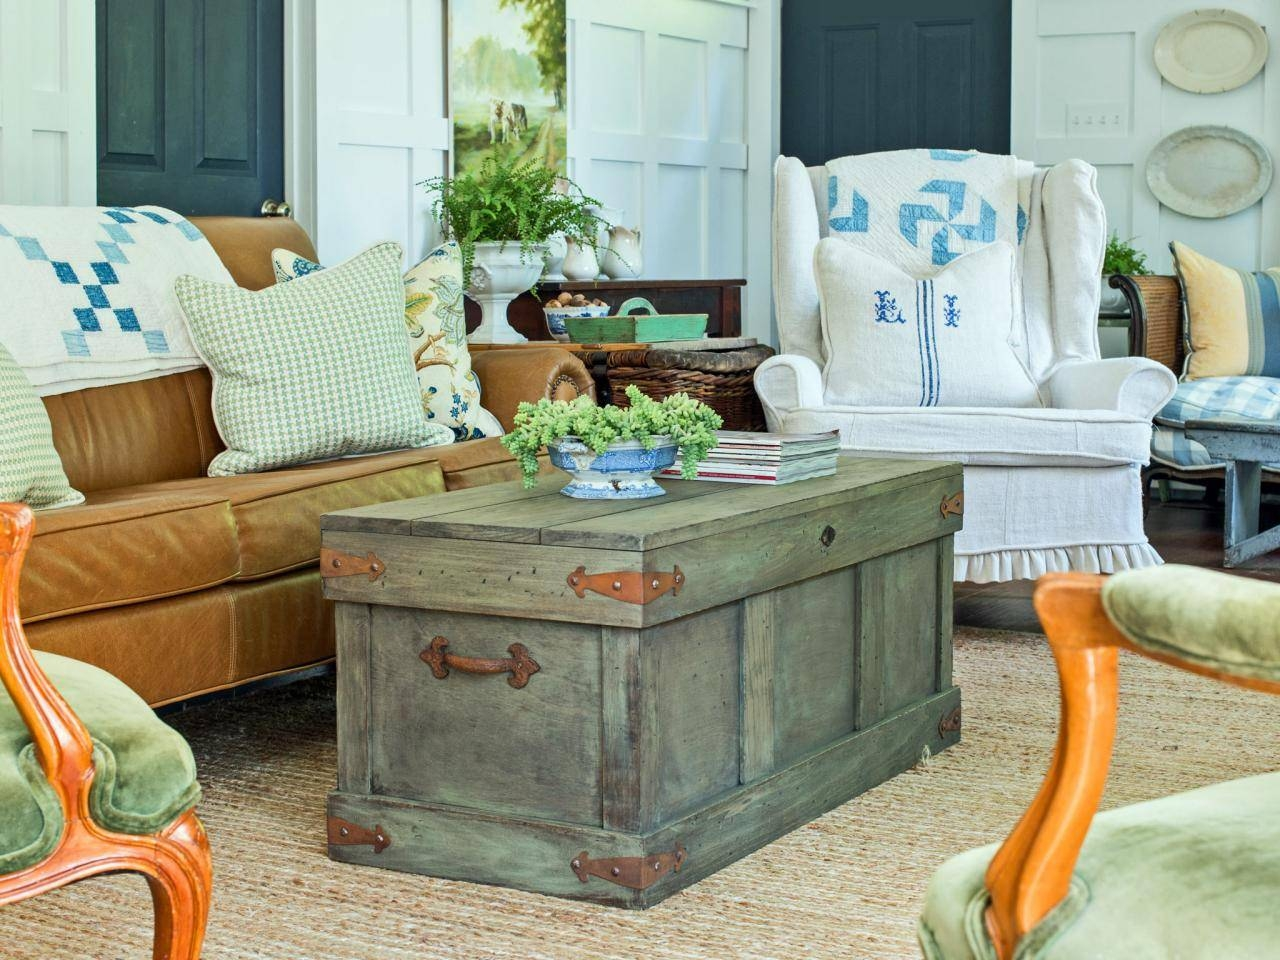 How To Construct A Rustic Trunk-Style Coffee Table | Hgtv throughout Trunks Coffee Tables (Image 18 of 30)